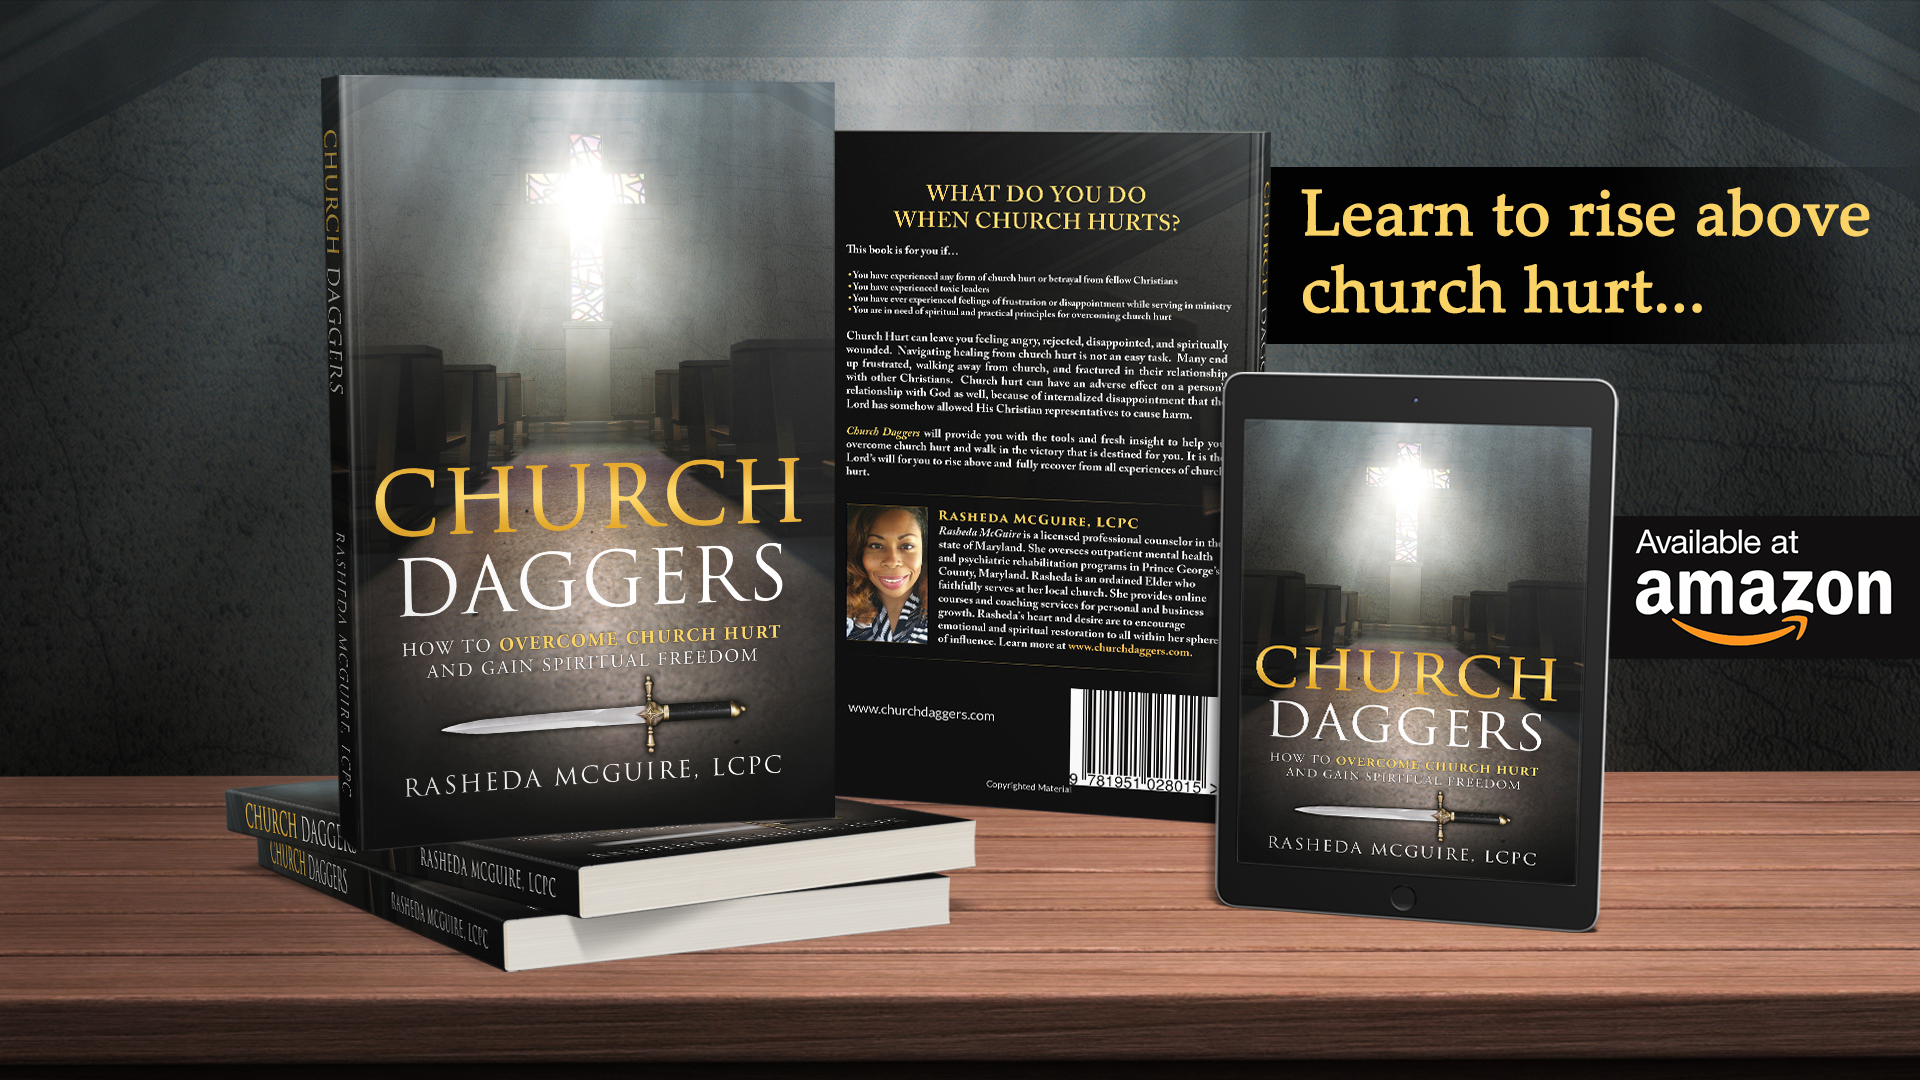 //churchdaggers.com/wp-content/uploads/2019/10/Church-Daggers-Promo-3D-Book-and-Ebook.jpg